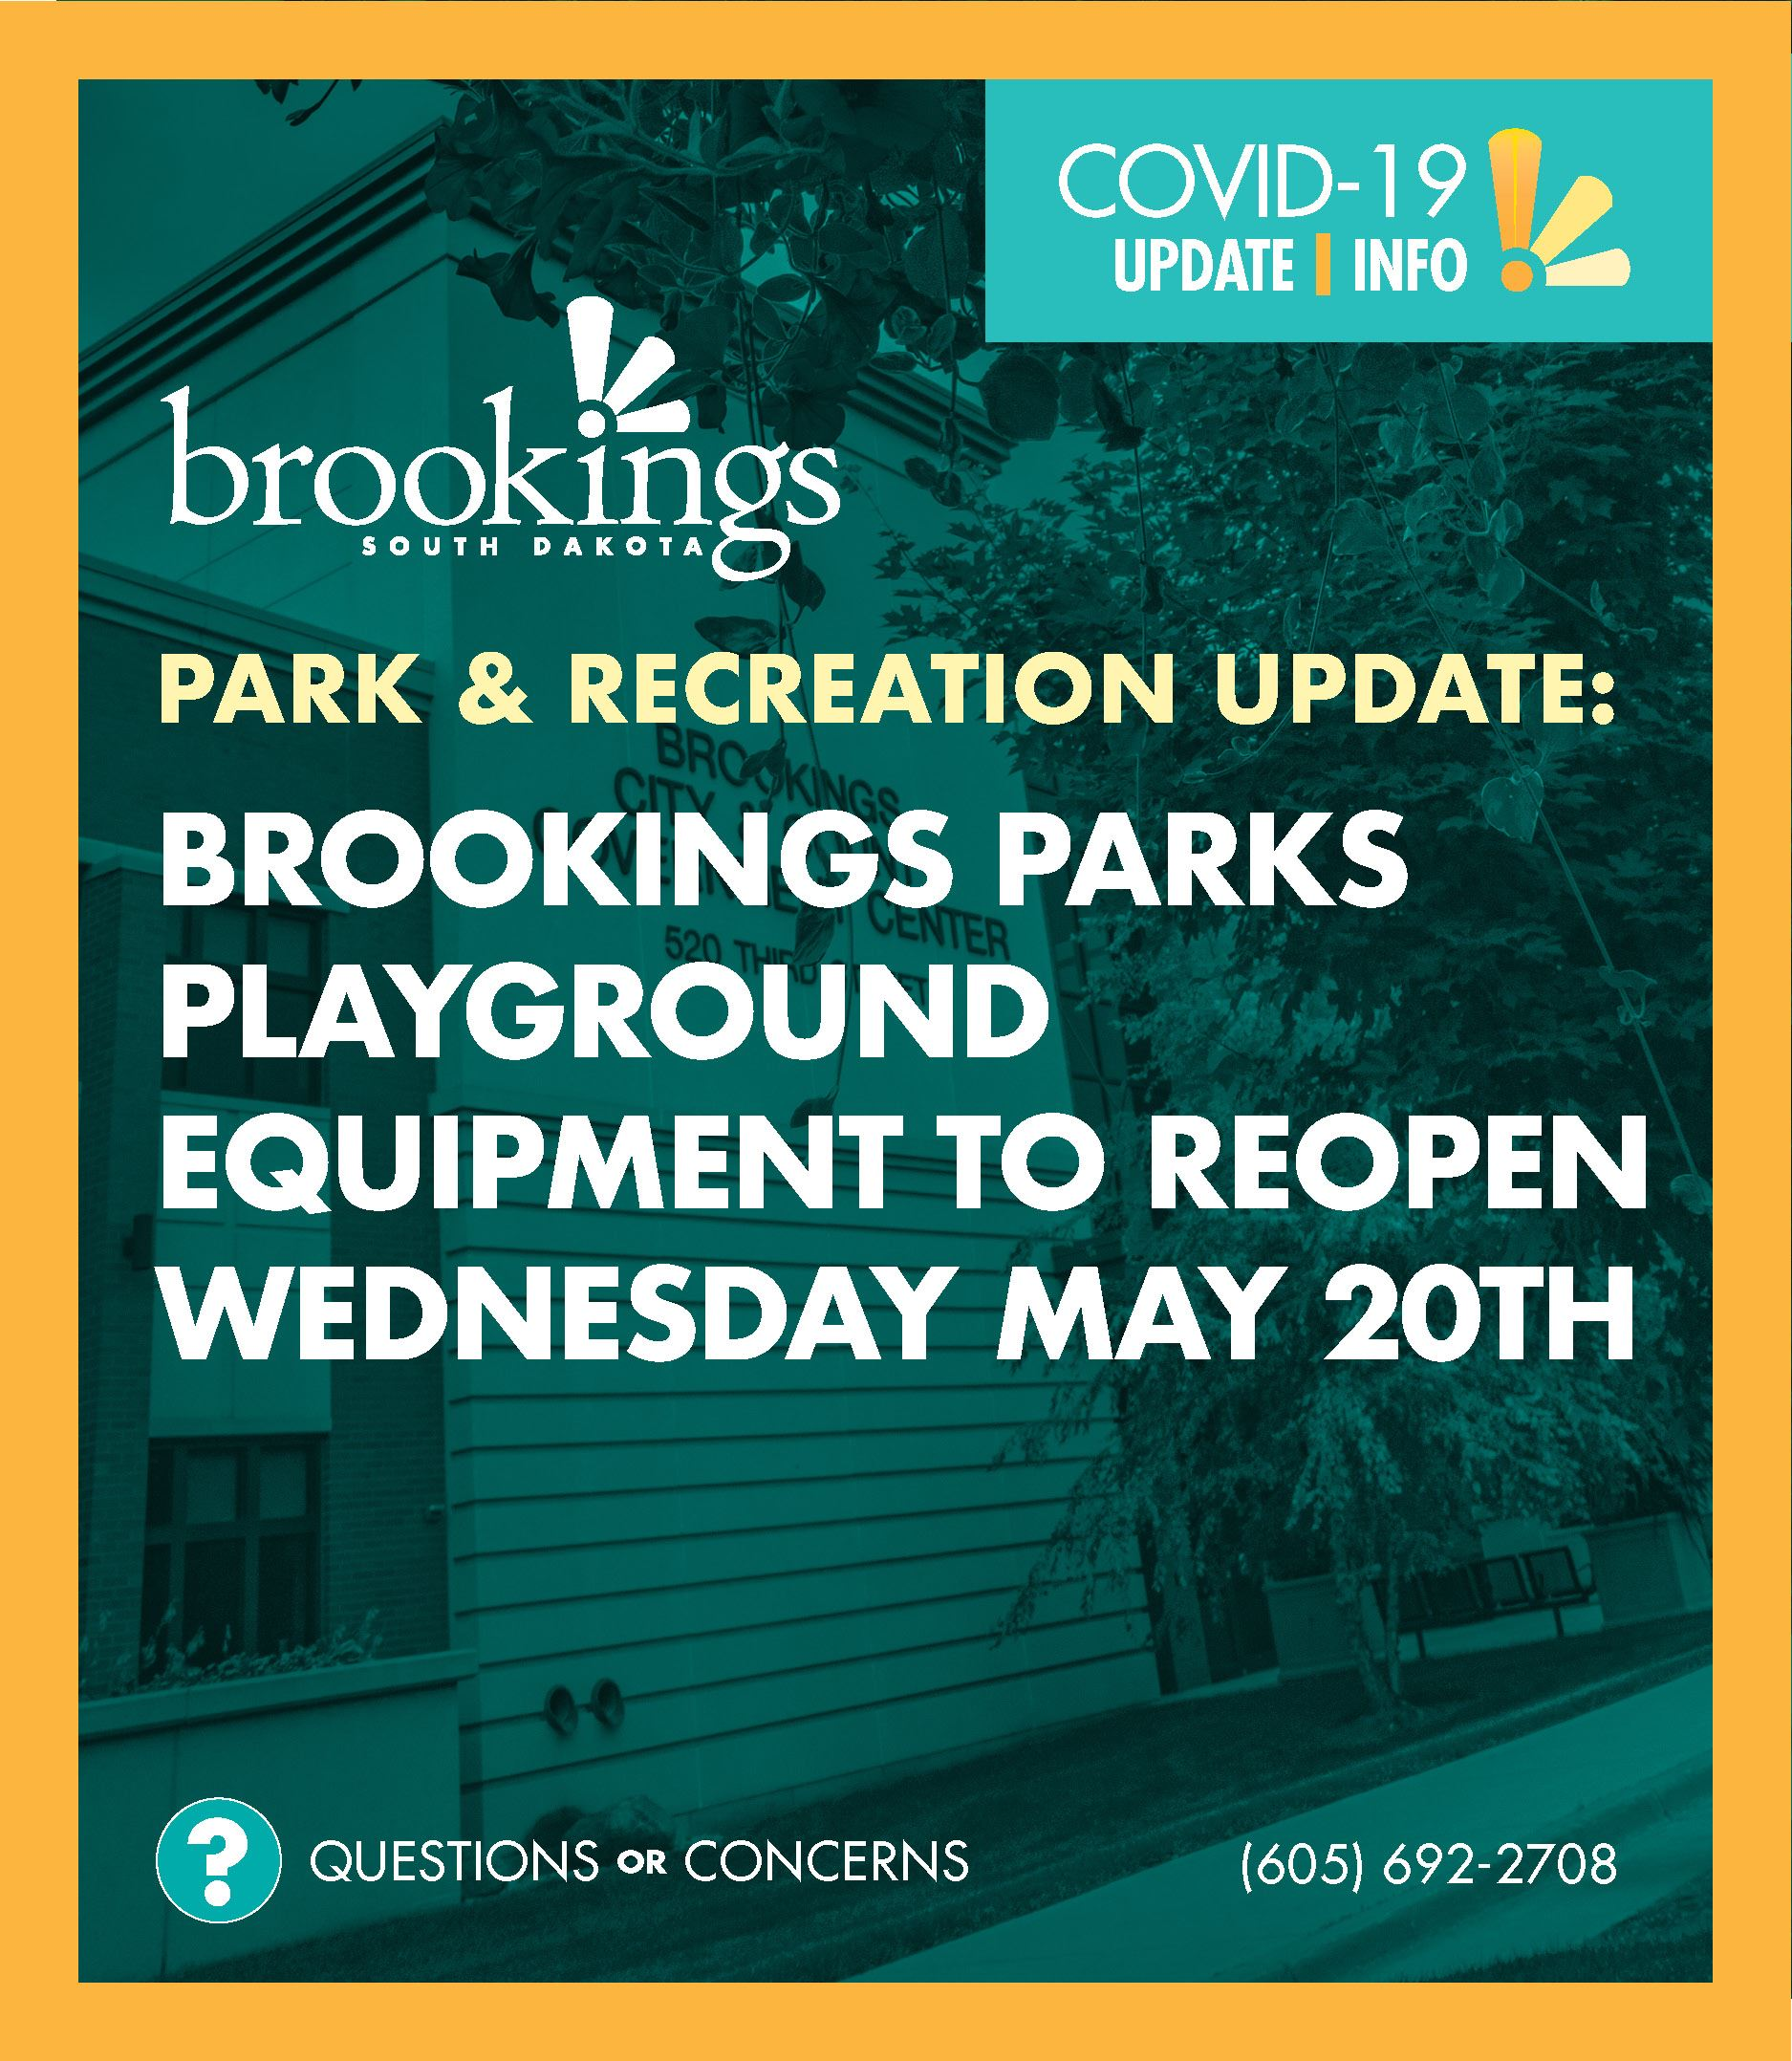 Brookings Playground Equipment to Reopen Wednesday May 20th